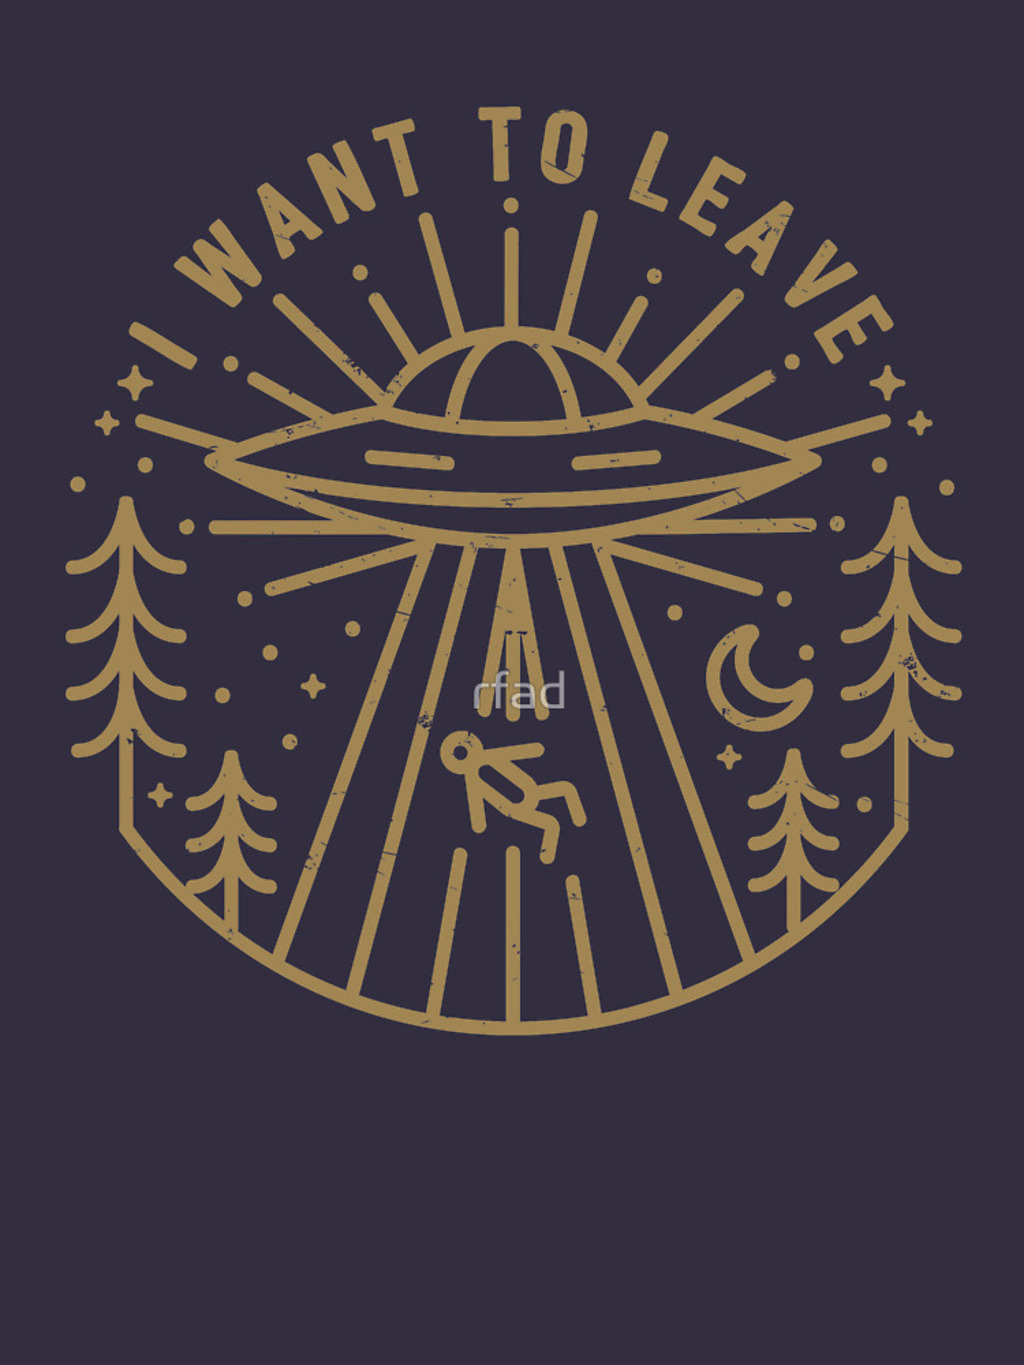 RedBubble: I want to leave